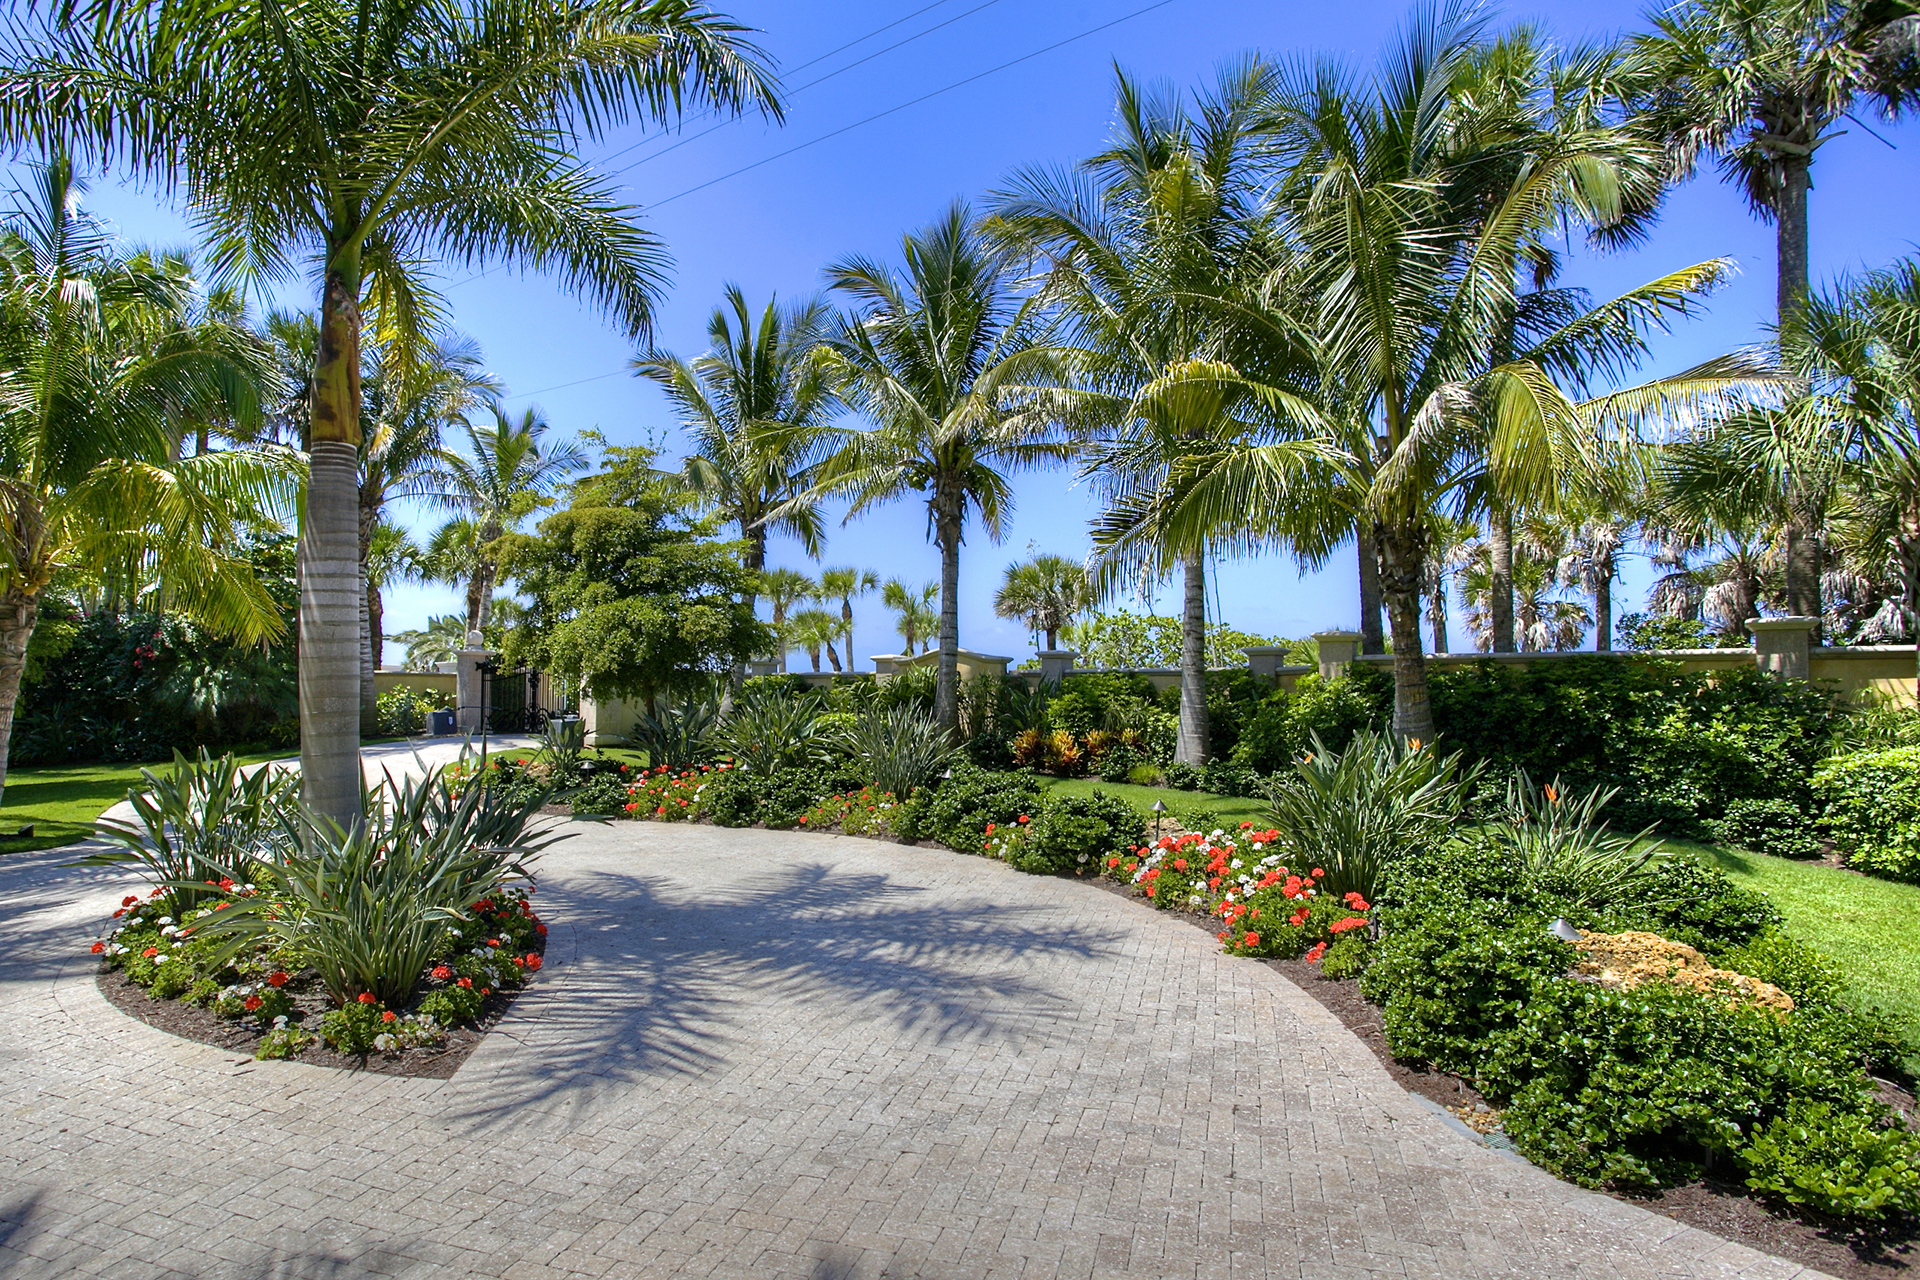 Landscaping for HOAs and communities in Sarasota Florida